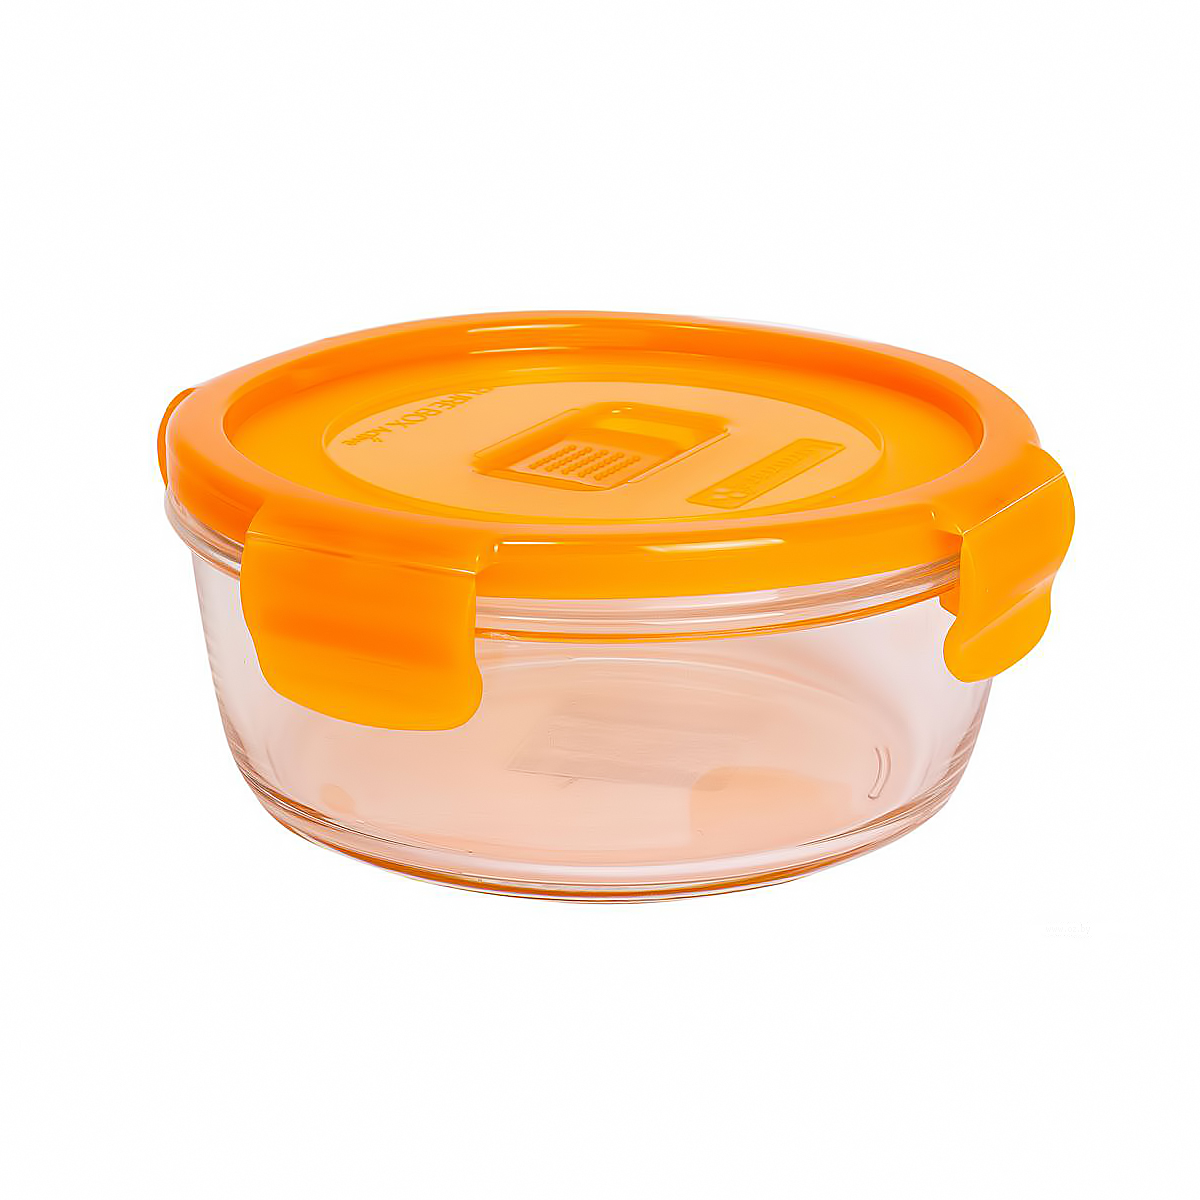 Салатник  PURE BOX ROUND ORANGE 0,42л с клапаном  N0923